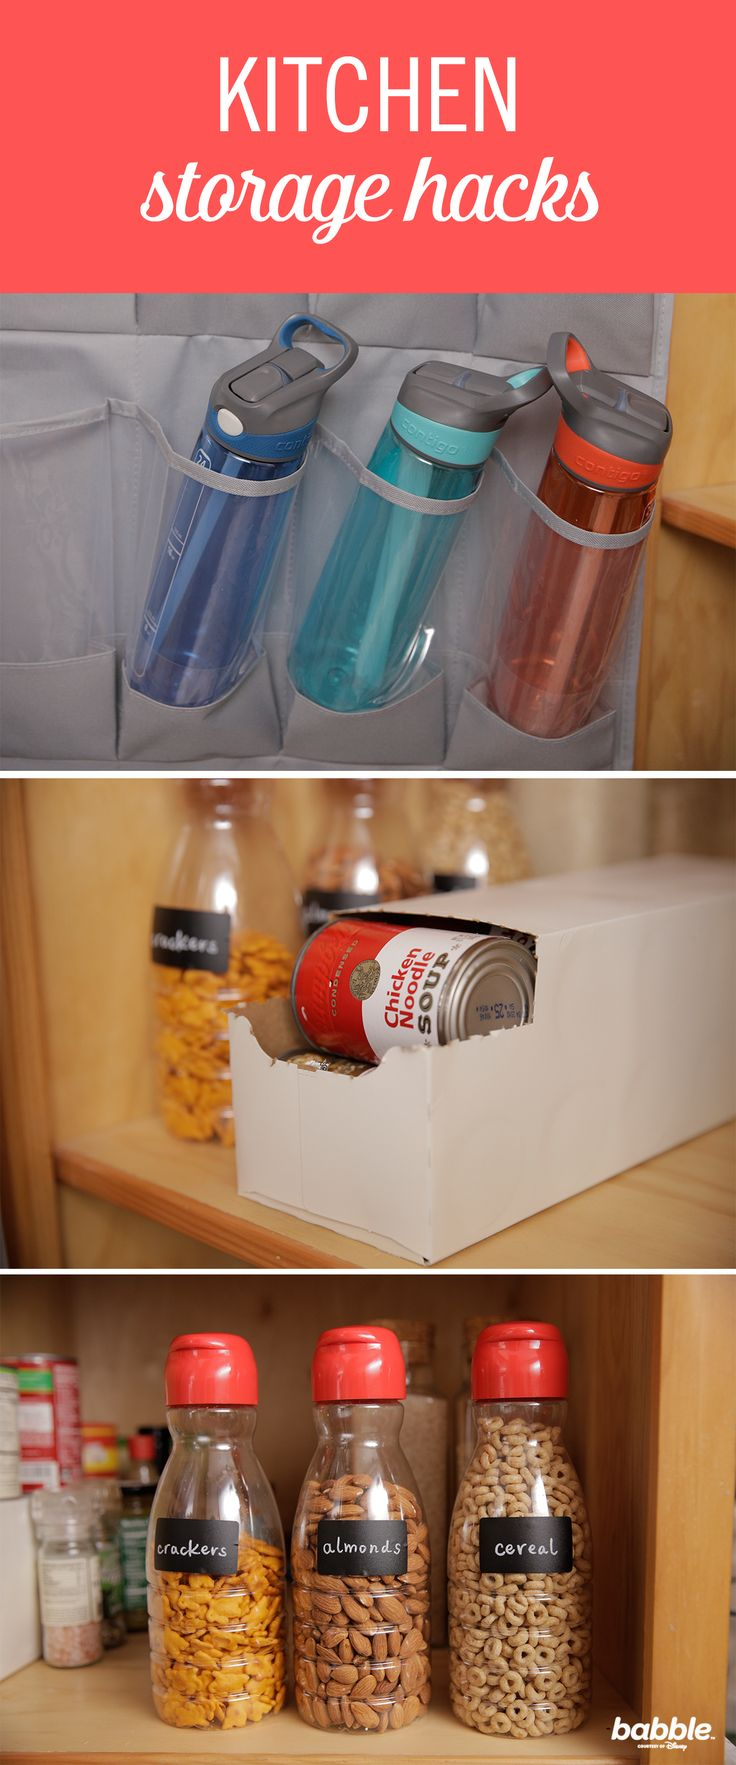 There are few places that are messier than the kitchen. To tackle the much-needed organization, try these three easy kitchen storage hacks. All you'll need is a shoe organizer, coffee creamer, and soda can box. From keeping your water bottles and cans tidy to categorizing your kids' favorite snacks, these ideas are sure to come in handy. Click for the DIY kitchen storage ideas!